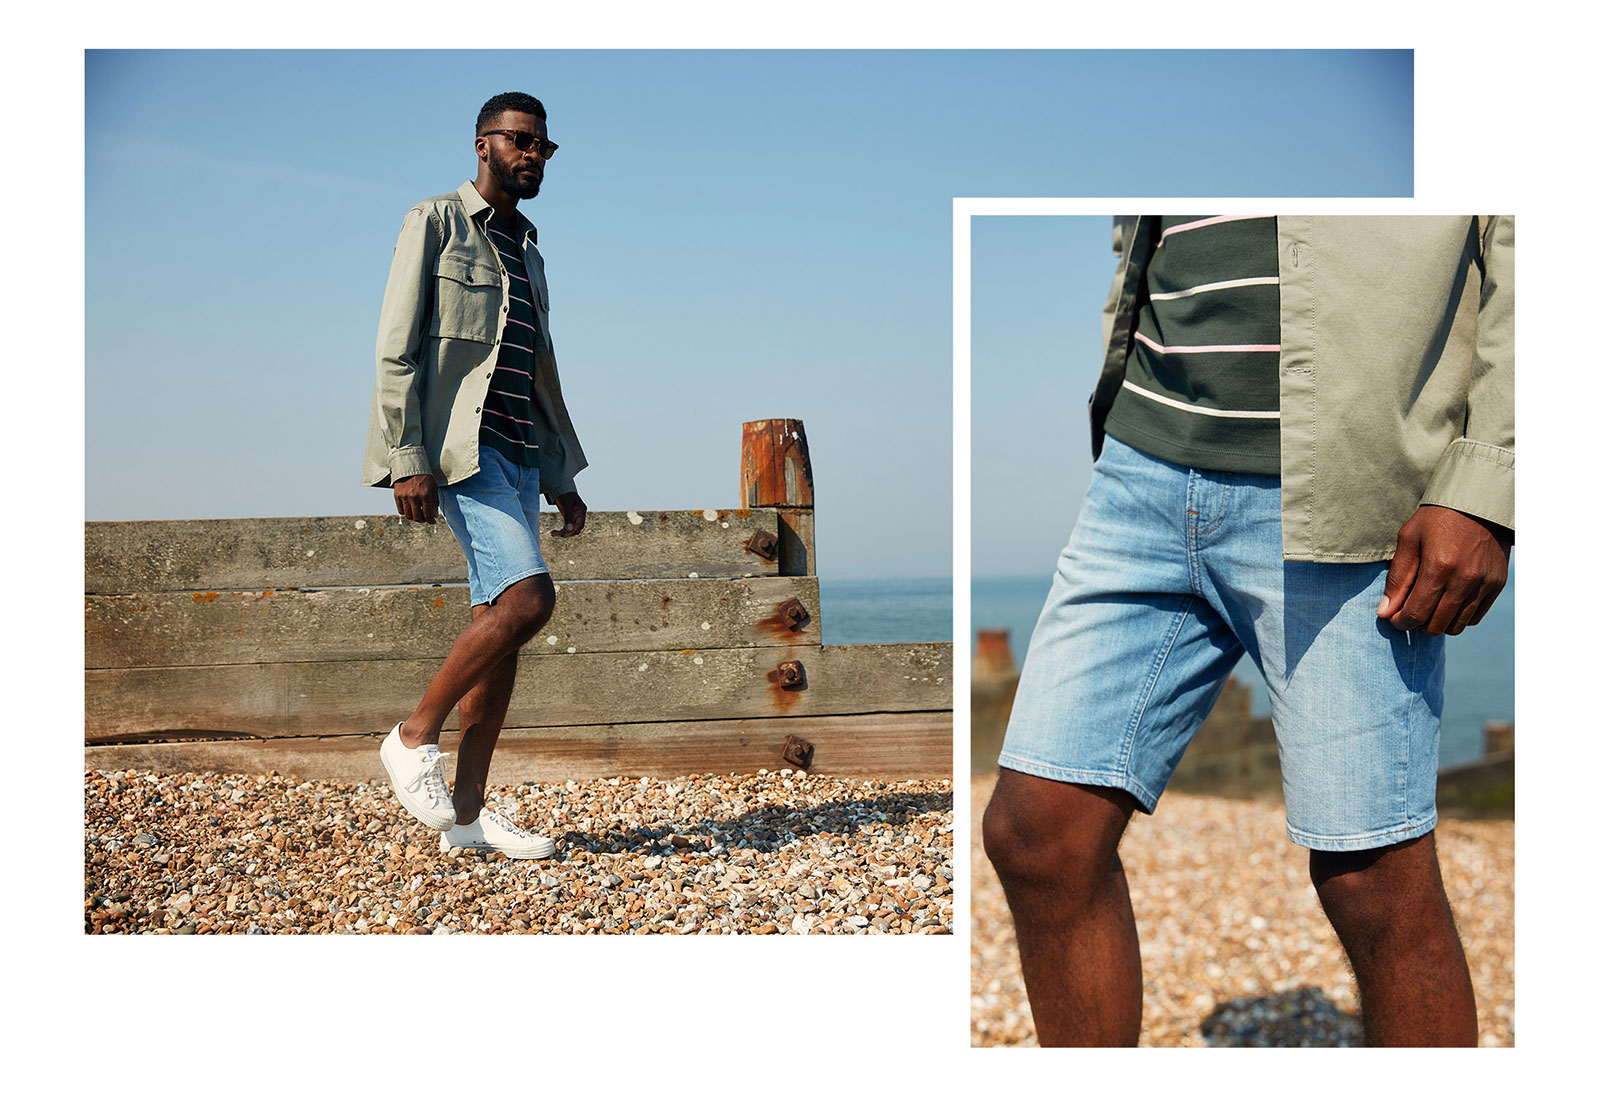 f3cc0e441e Photographed: Lee Rider Kick It denim shorts (£55); French Connection  military jacket (£70); A.P.C khaki 'Jimmy' tee (£85); River Island  sunglasses (£14); ...